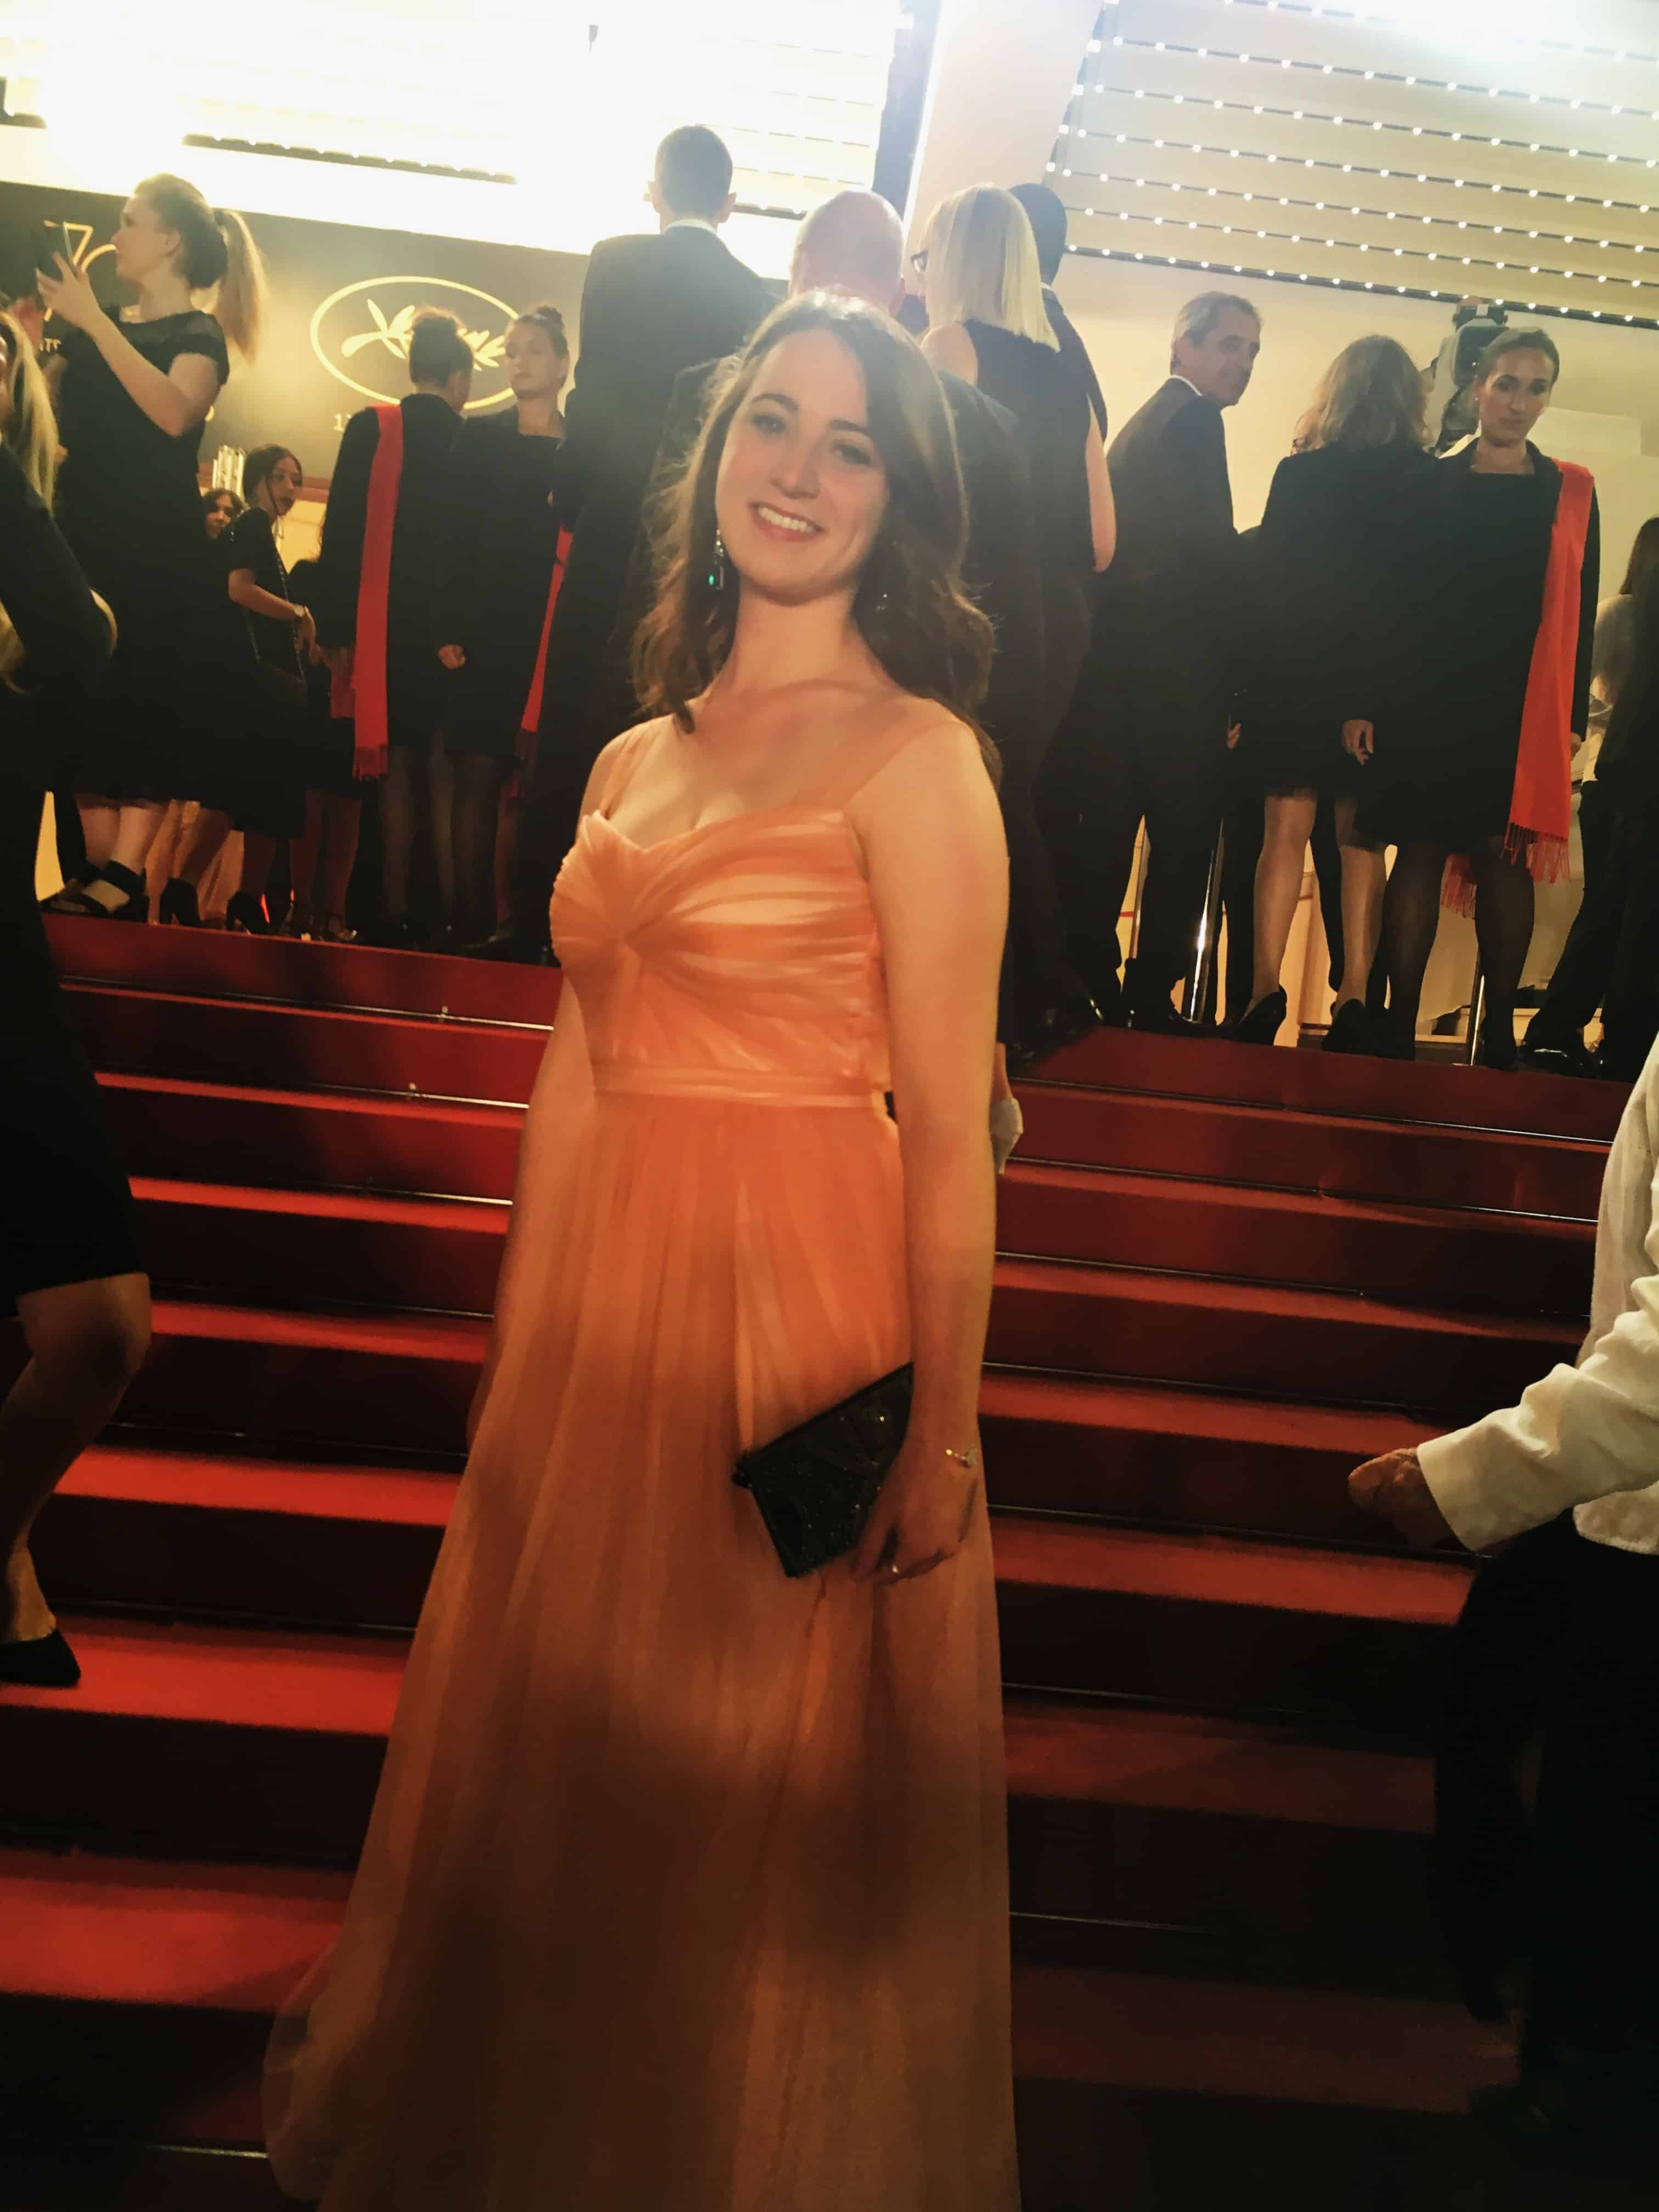 Halley Rose Meslin on the red carpet at the Cannes Film Festival in Cannes,  France. d60f60fd36e7